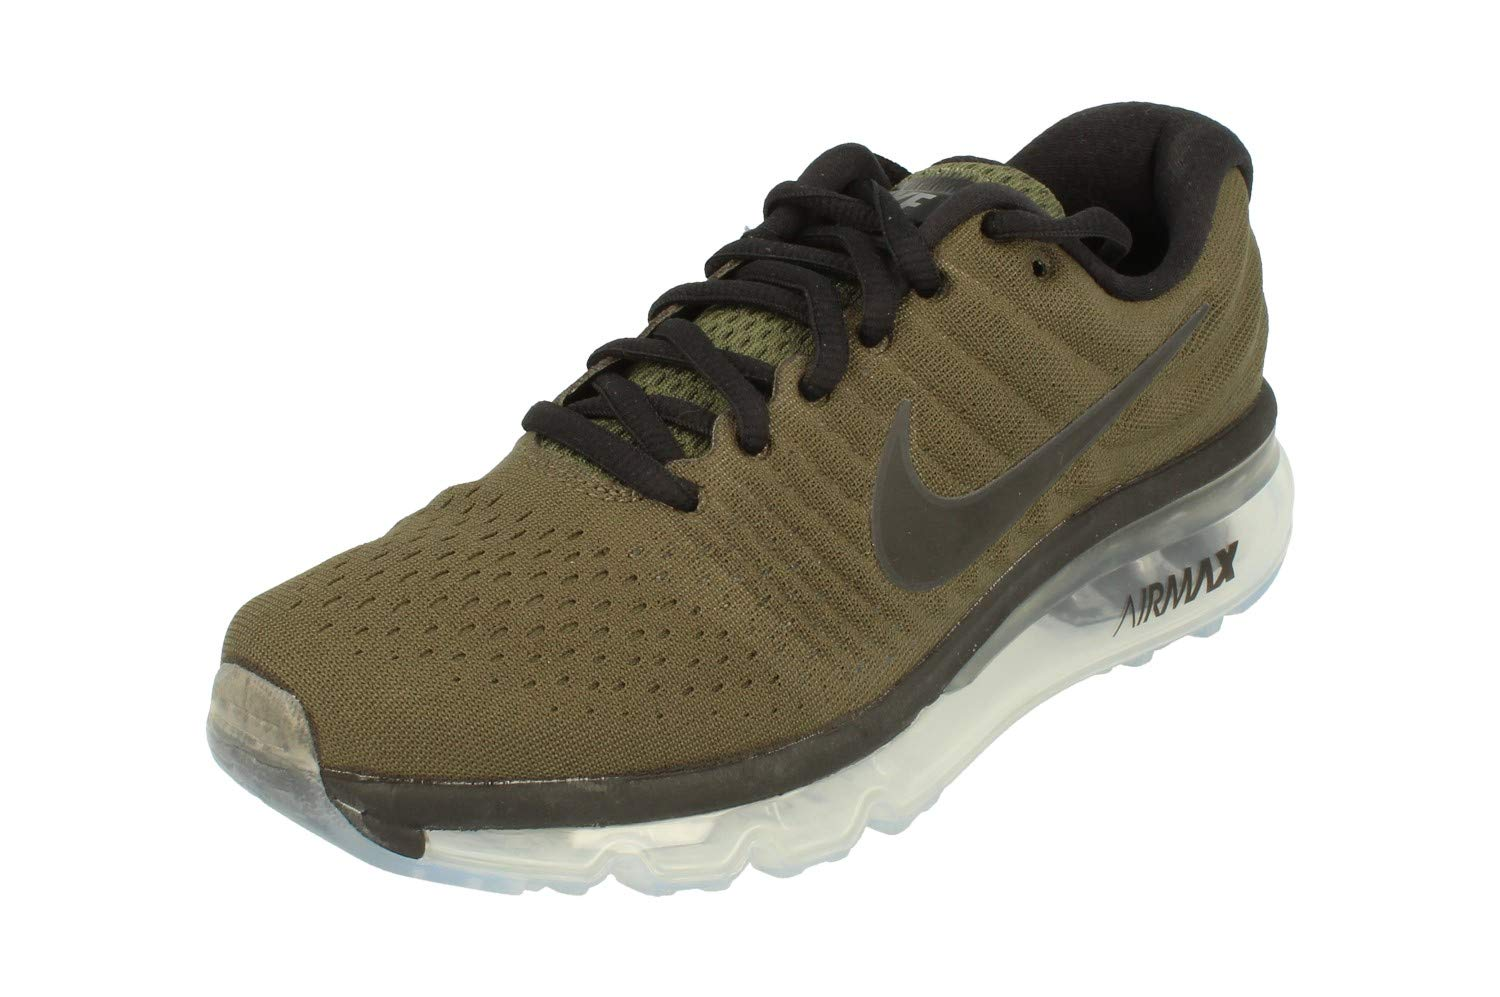 the latest 34863 2be08 Nike Air Max 2017 GS Running Trainers 851622 Sneakers Shoes (UK 4.5 Us 5Y  EU 37.5, Cargo Khaki Black 301)